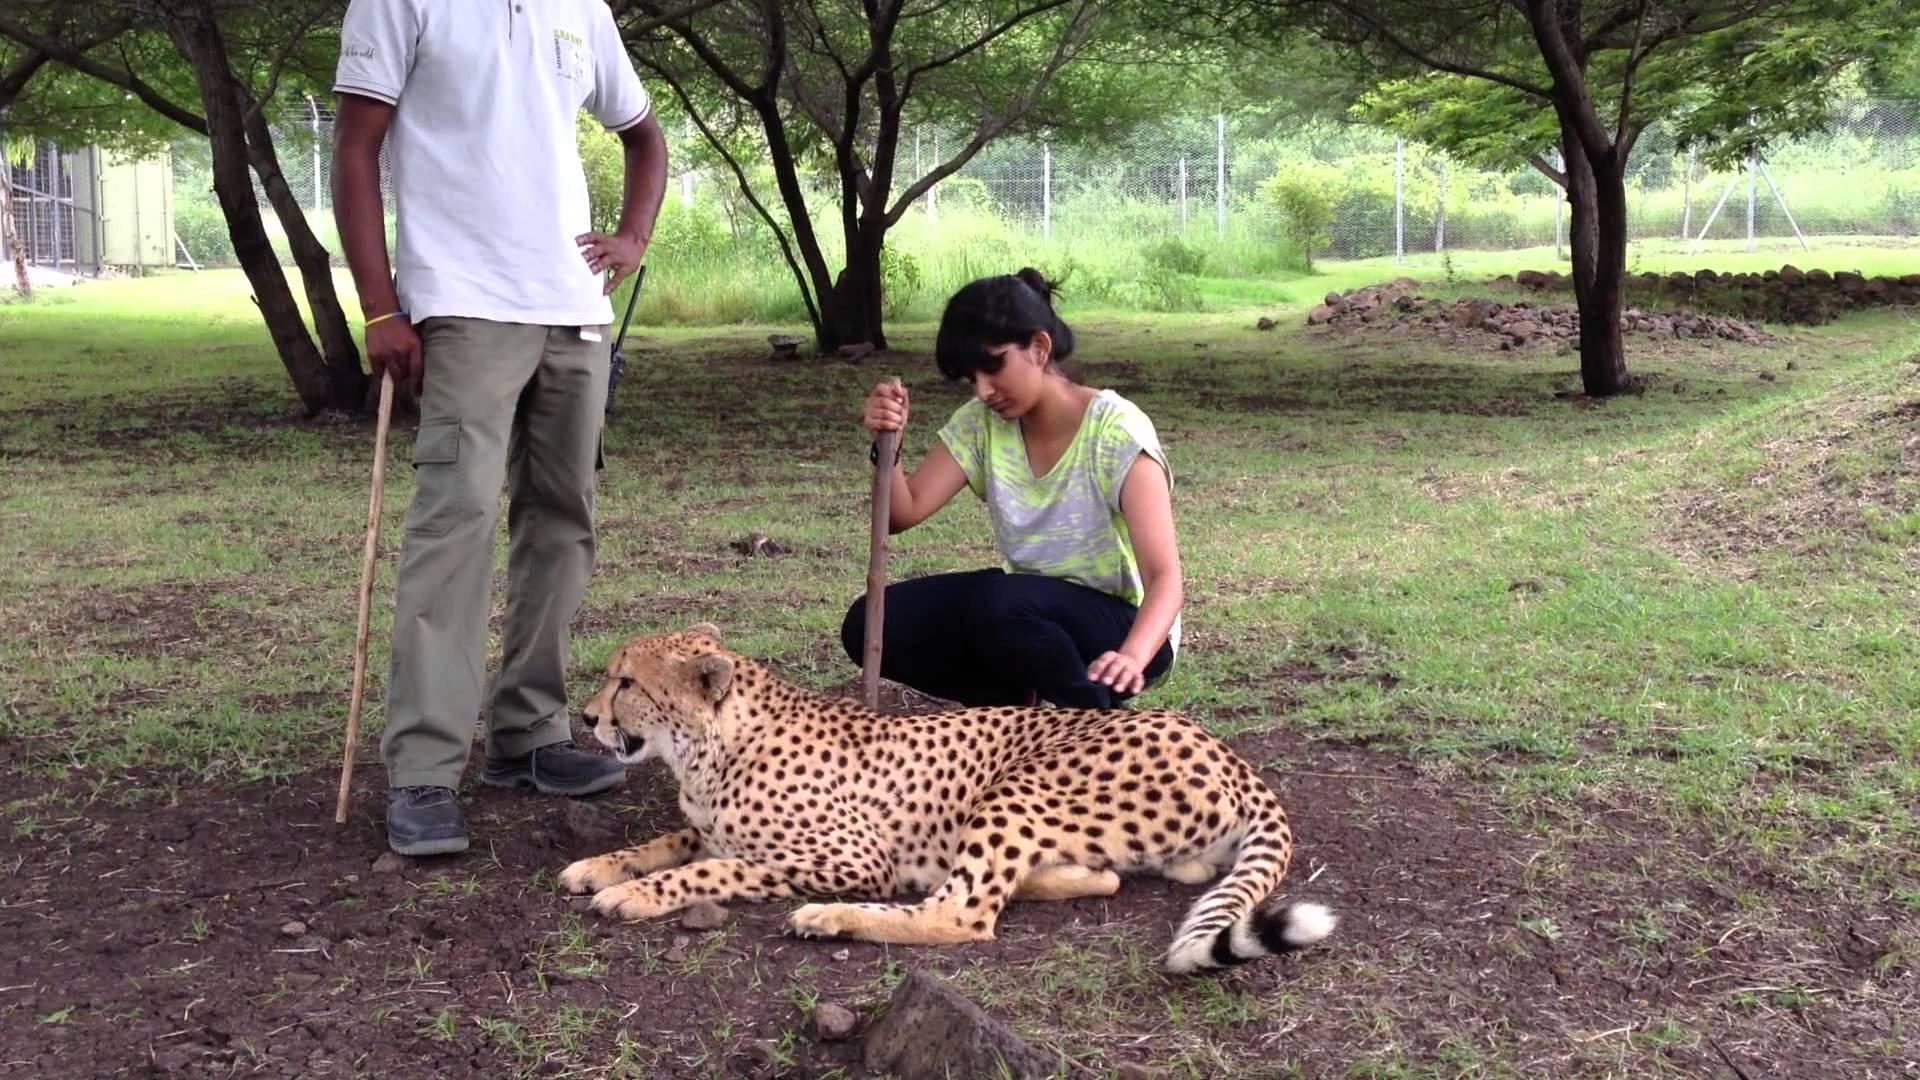 Mauritius attractions: Cheetah at Casela